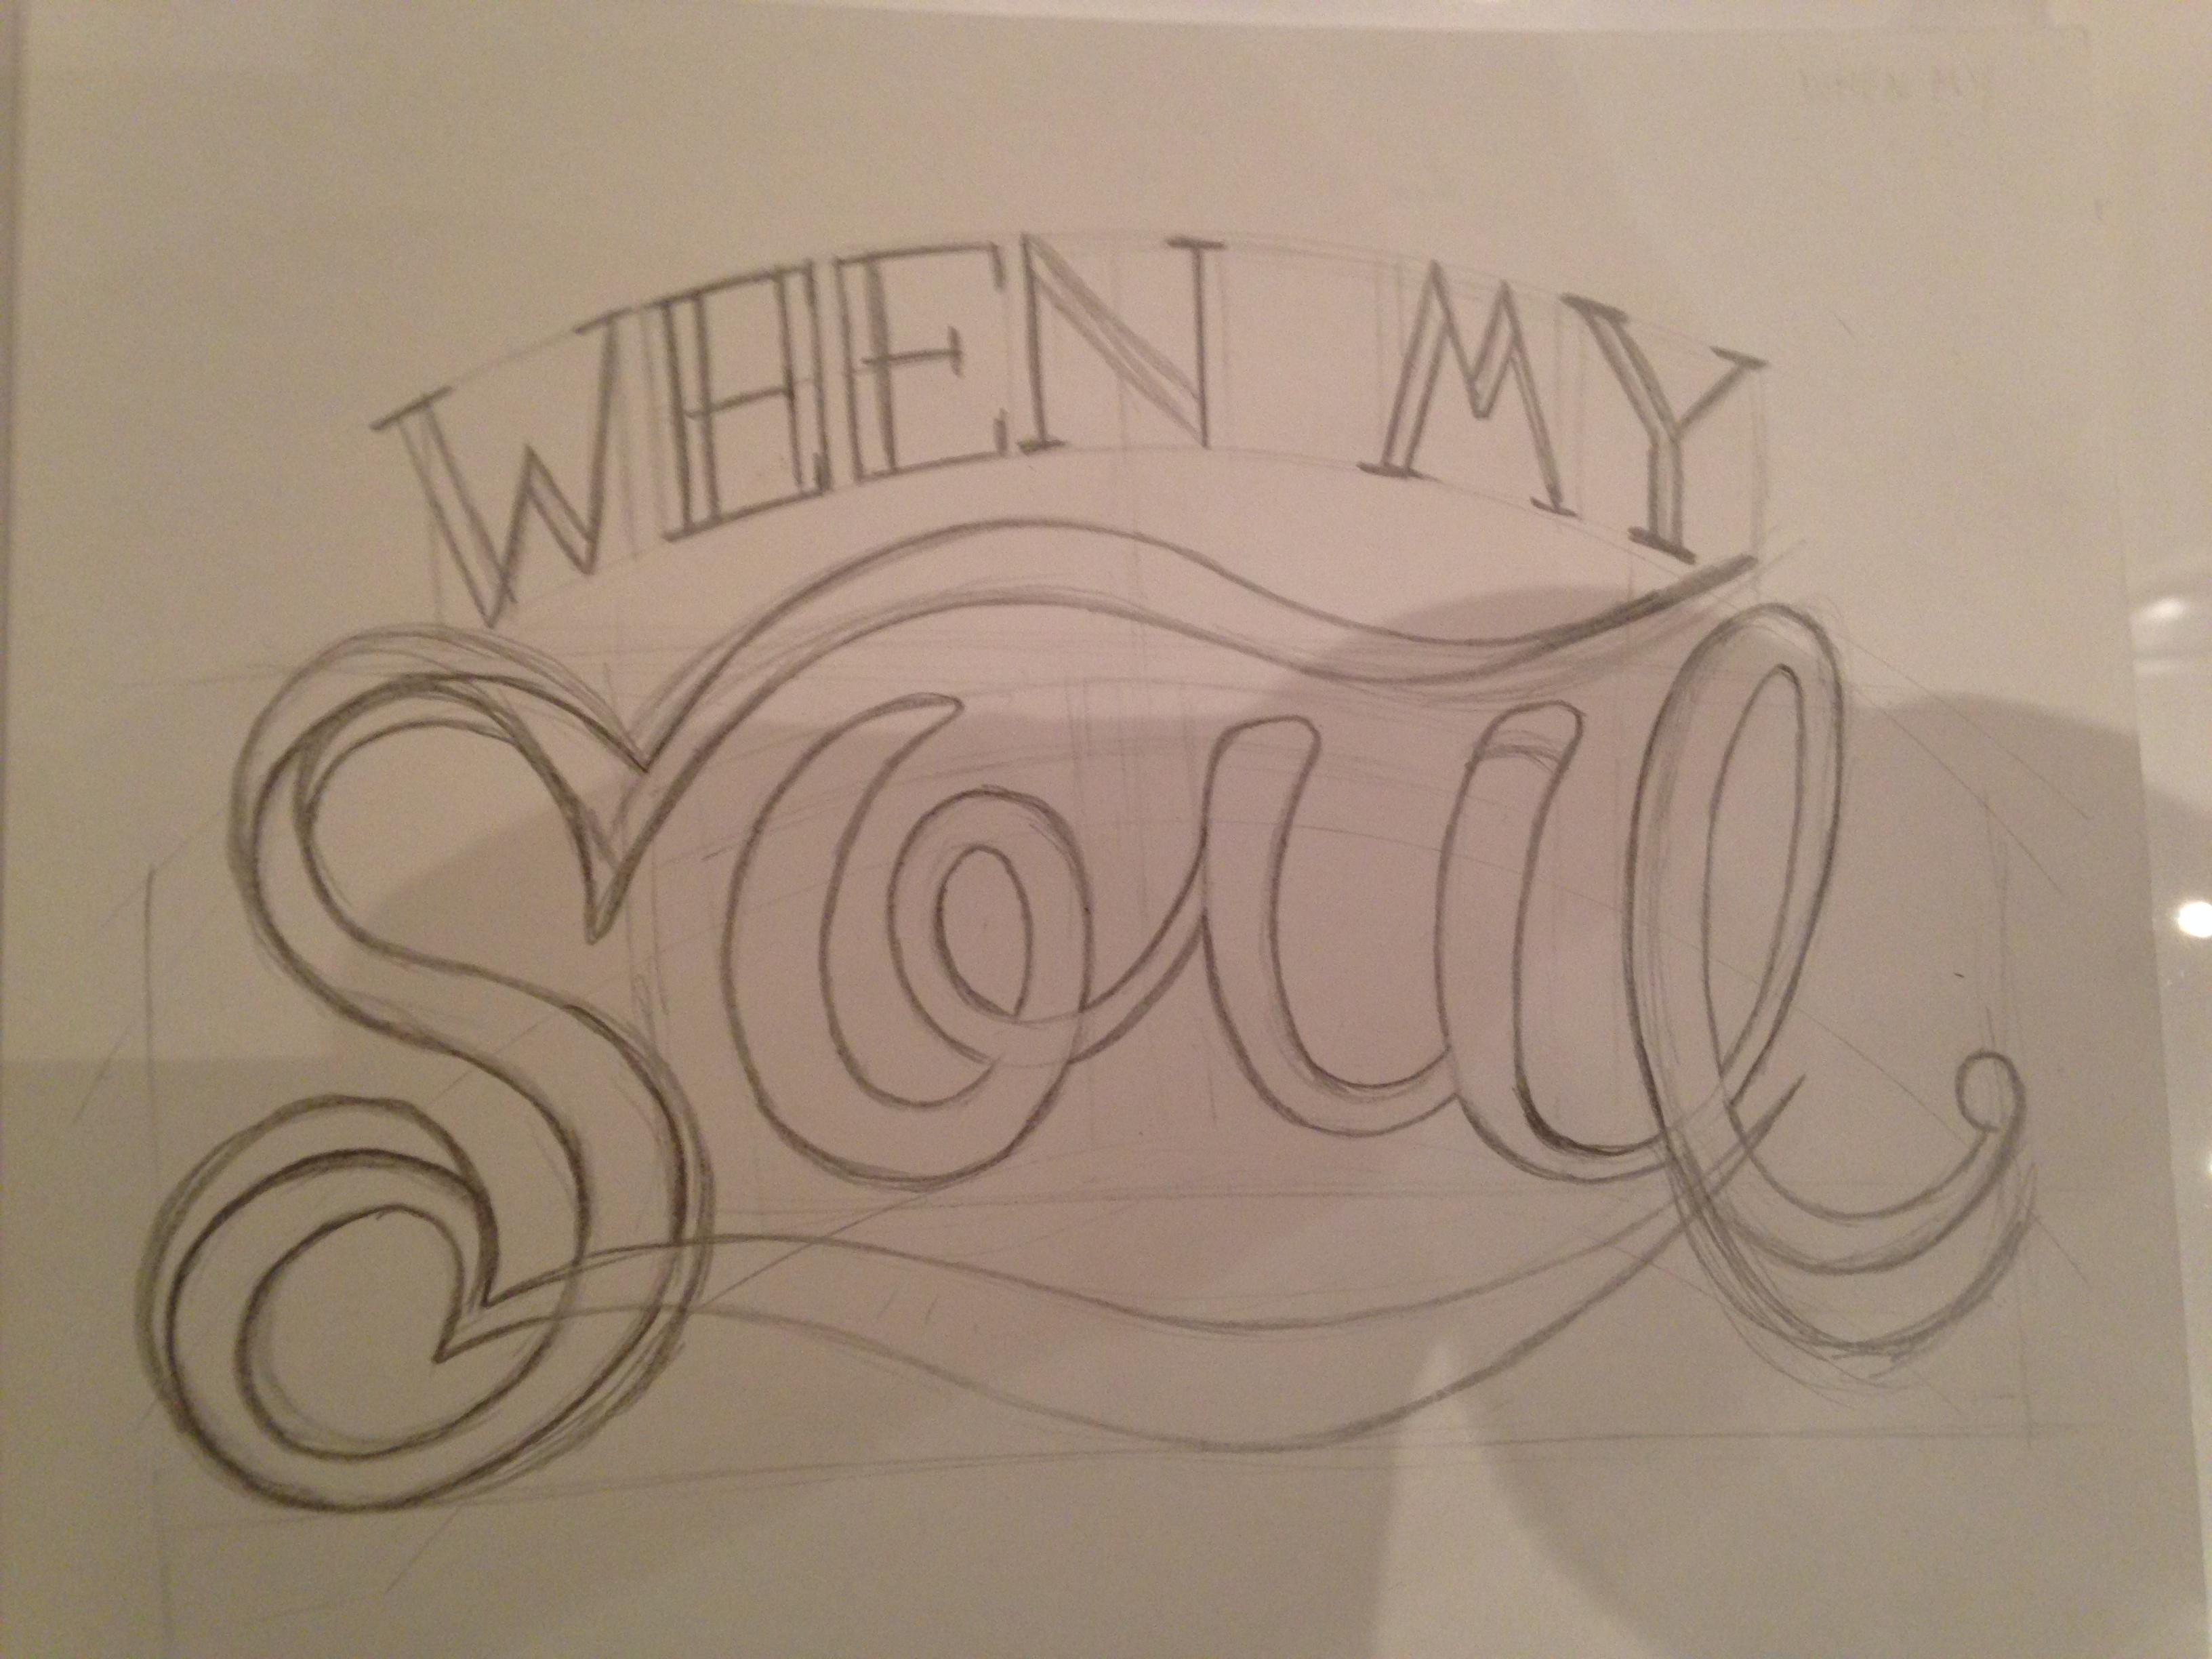 When my soul was in the lost and found... - image 4 - student project